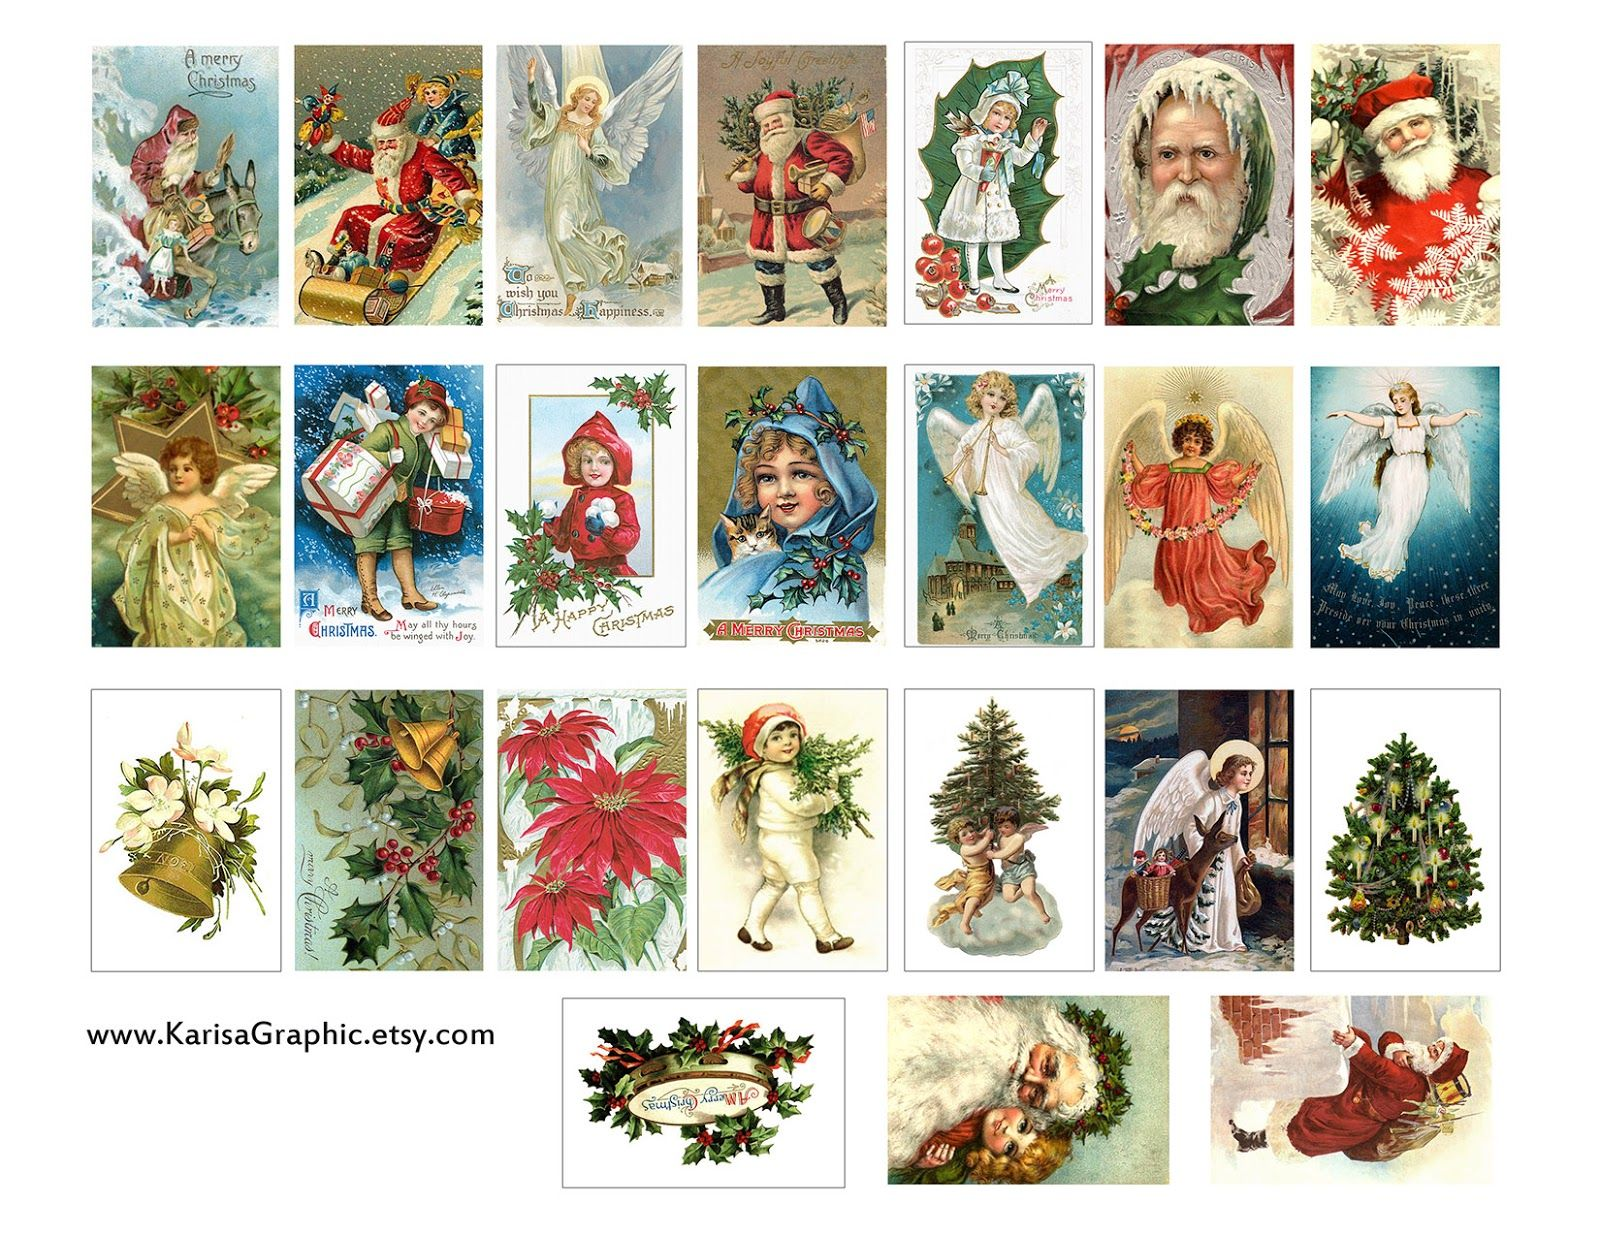 Free printable vintage christmas cards - Vintage Holiday Tags Printable Free The Size Of The Tags Is 2x1 25 Inch